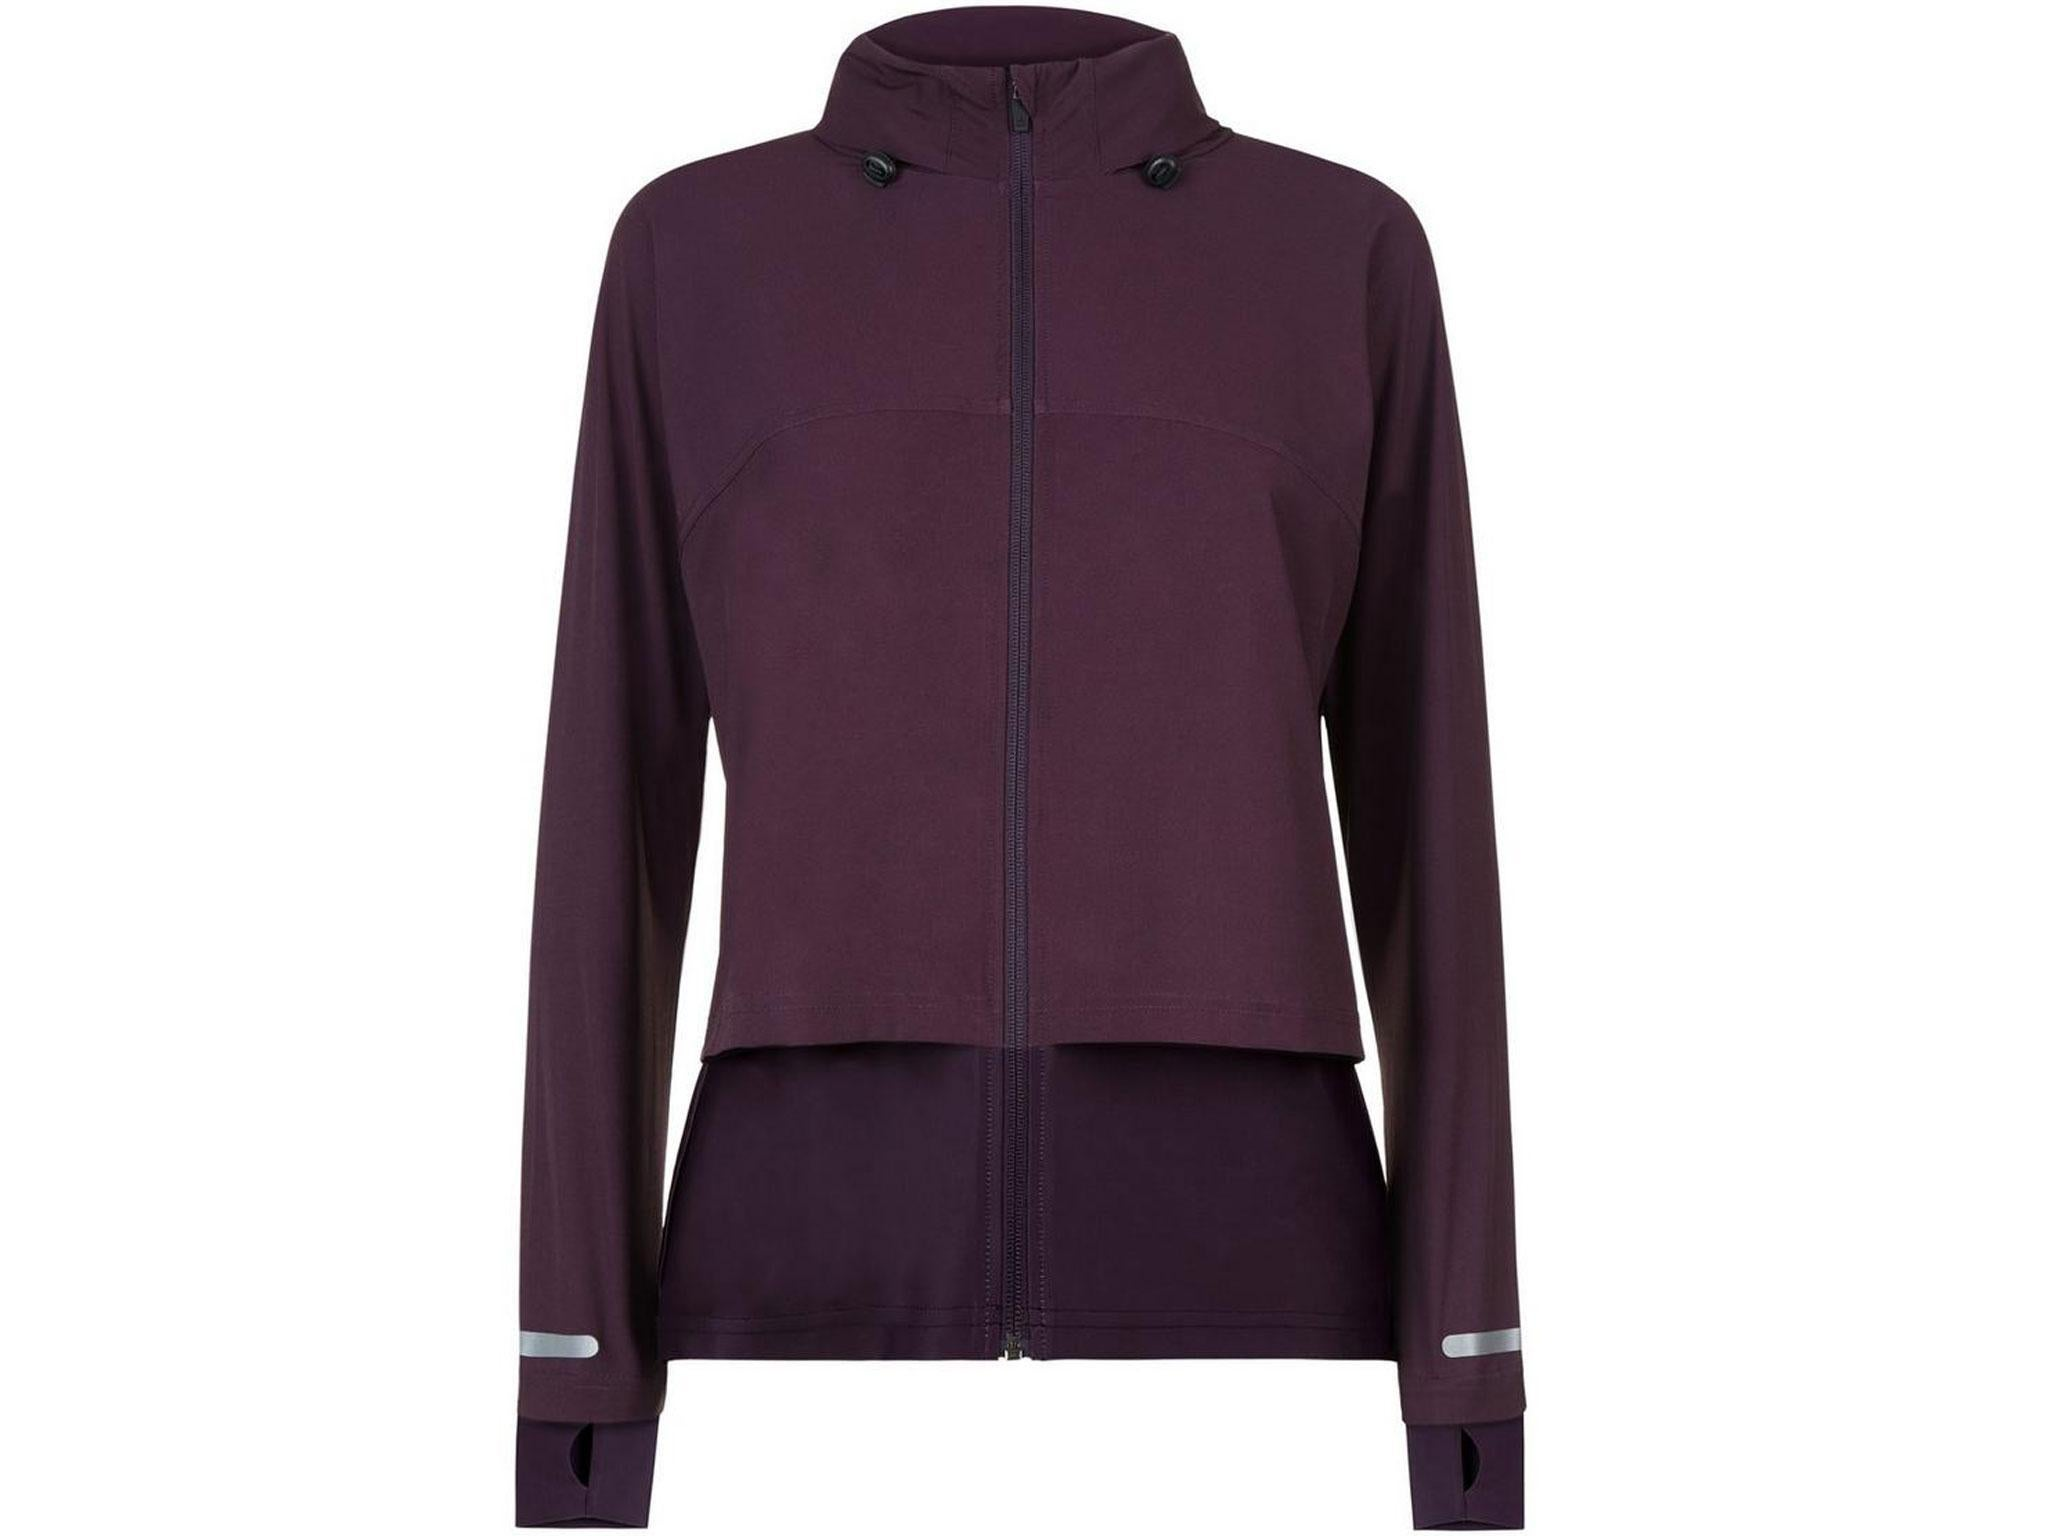 3311c65a7 7 best women's running jackets for autumn | The Independent